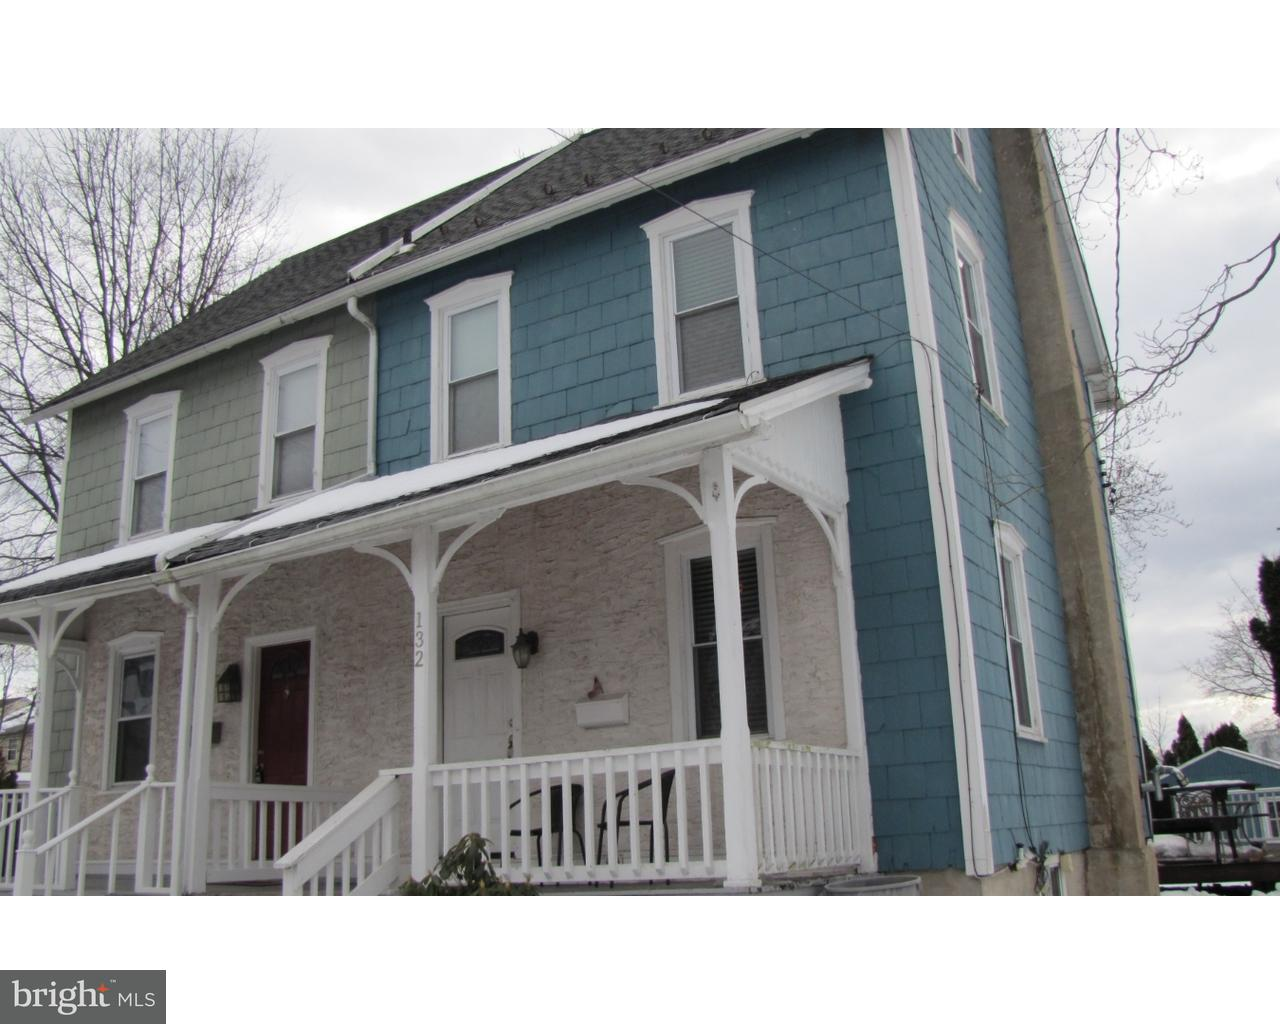 132 S BRANCH ST, SELLERSVILLE - Listed at $205,000, SELLERSVILLE